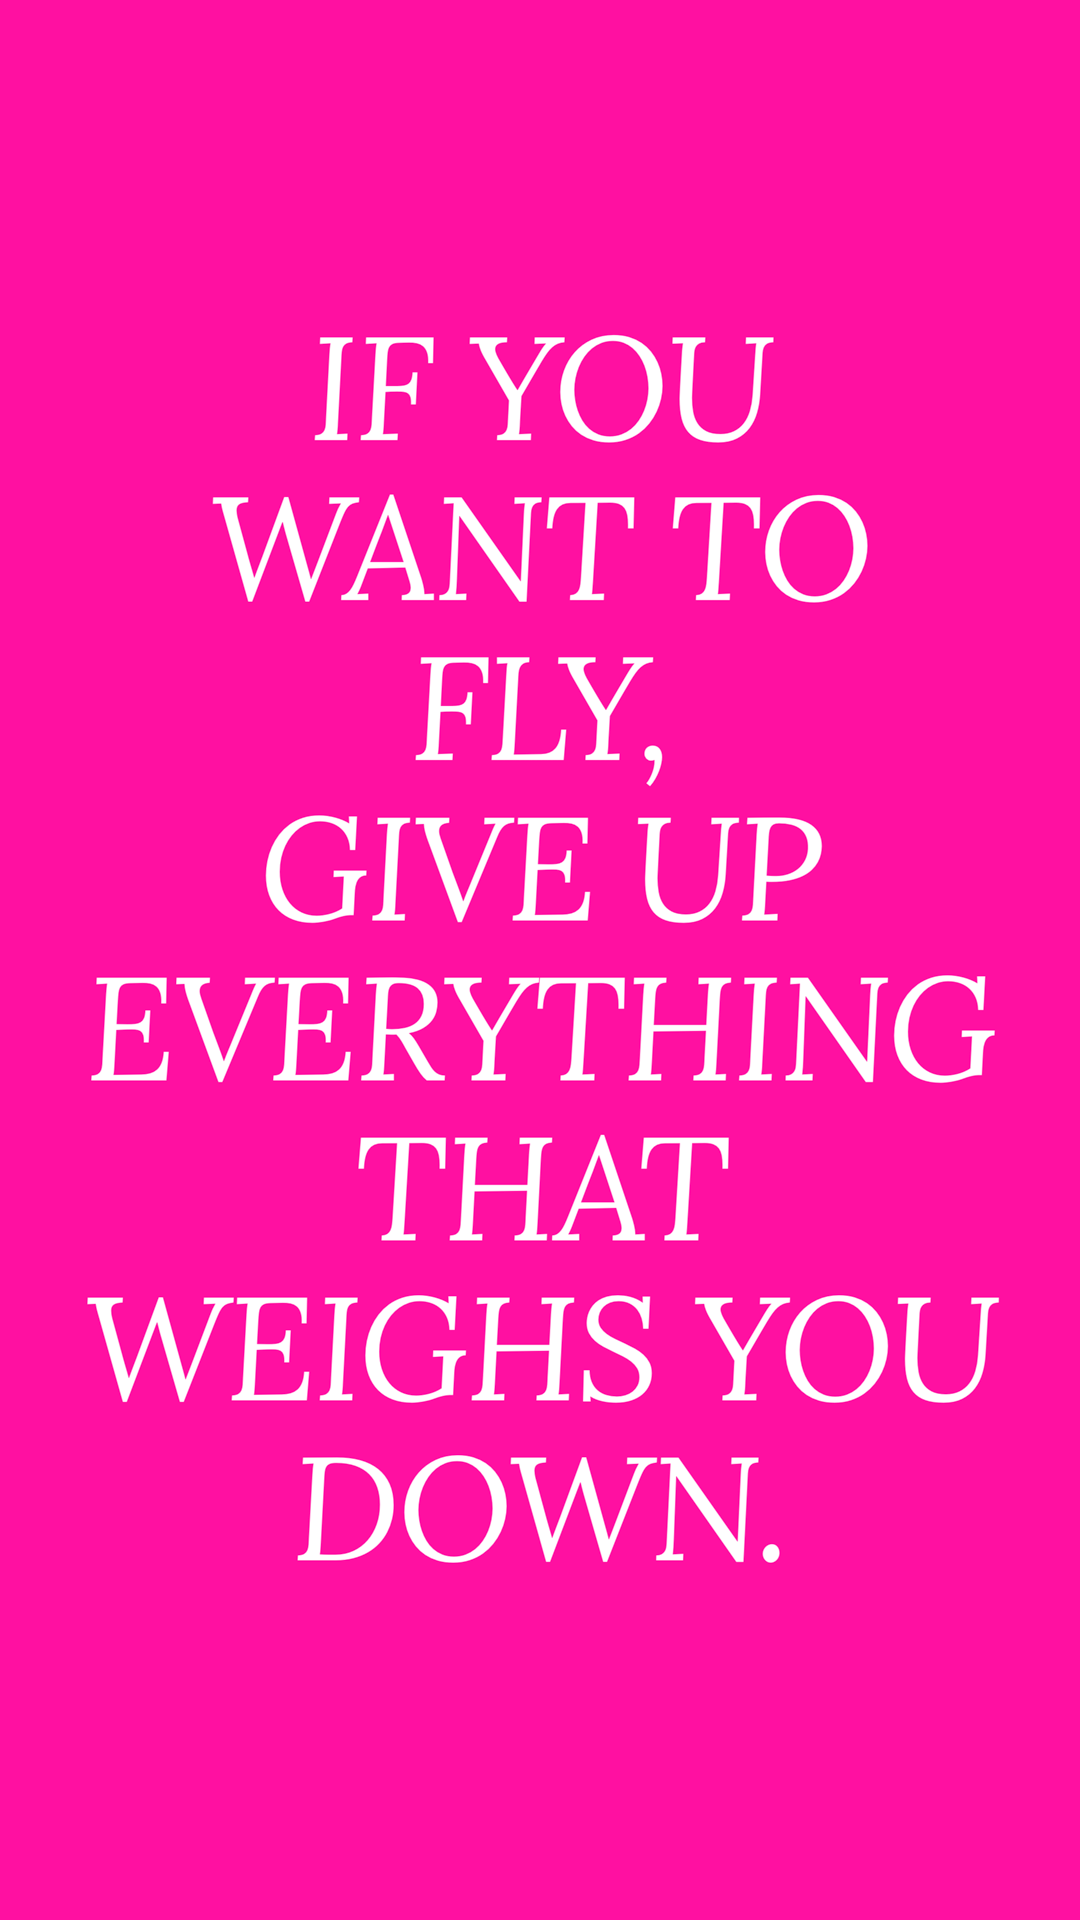 Inspirational Quotes Buddha Quotes Pink Quotes Iphone Wallpaper Pink Aesthetic Pink Quotes Inspirational Quotes Buddha Quotes Inspirational